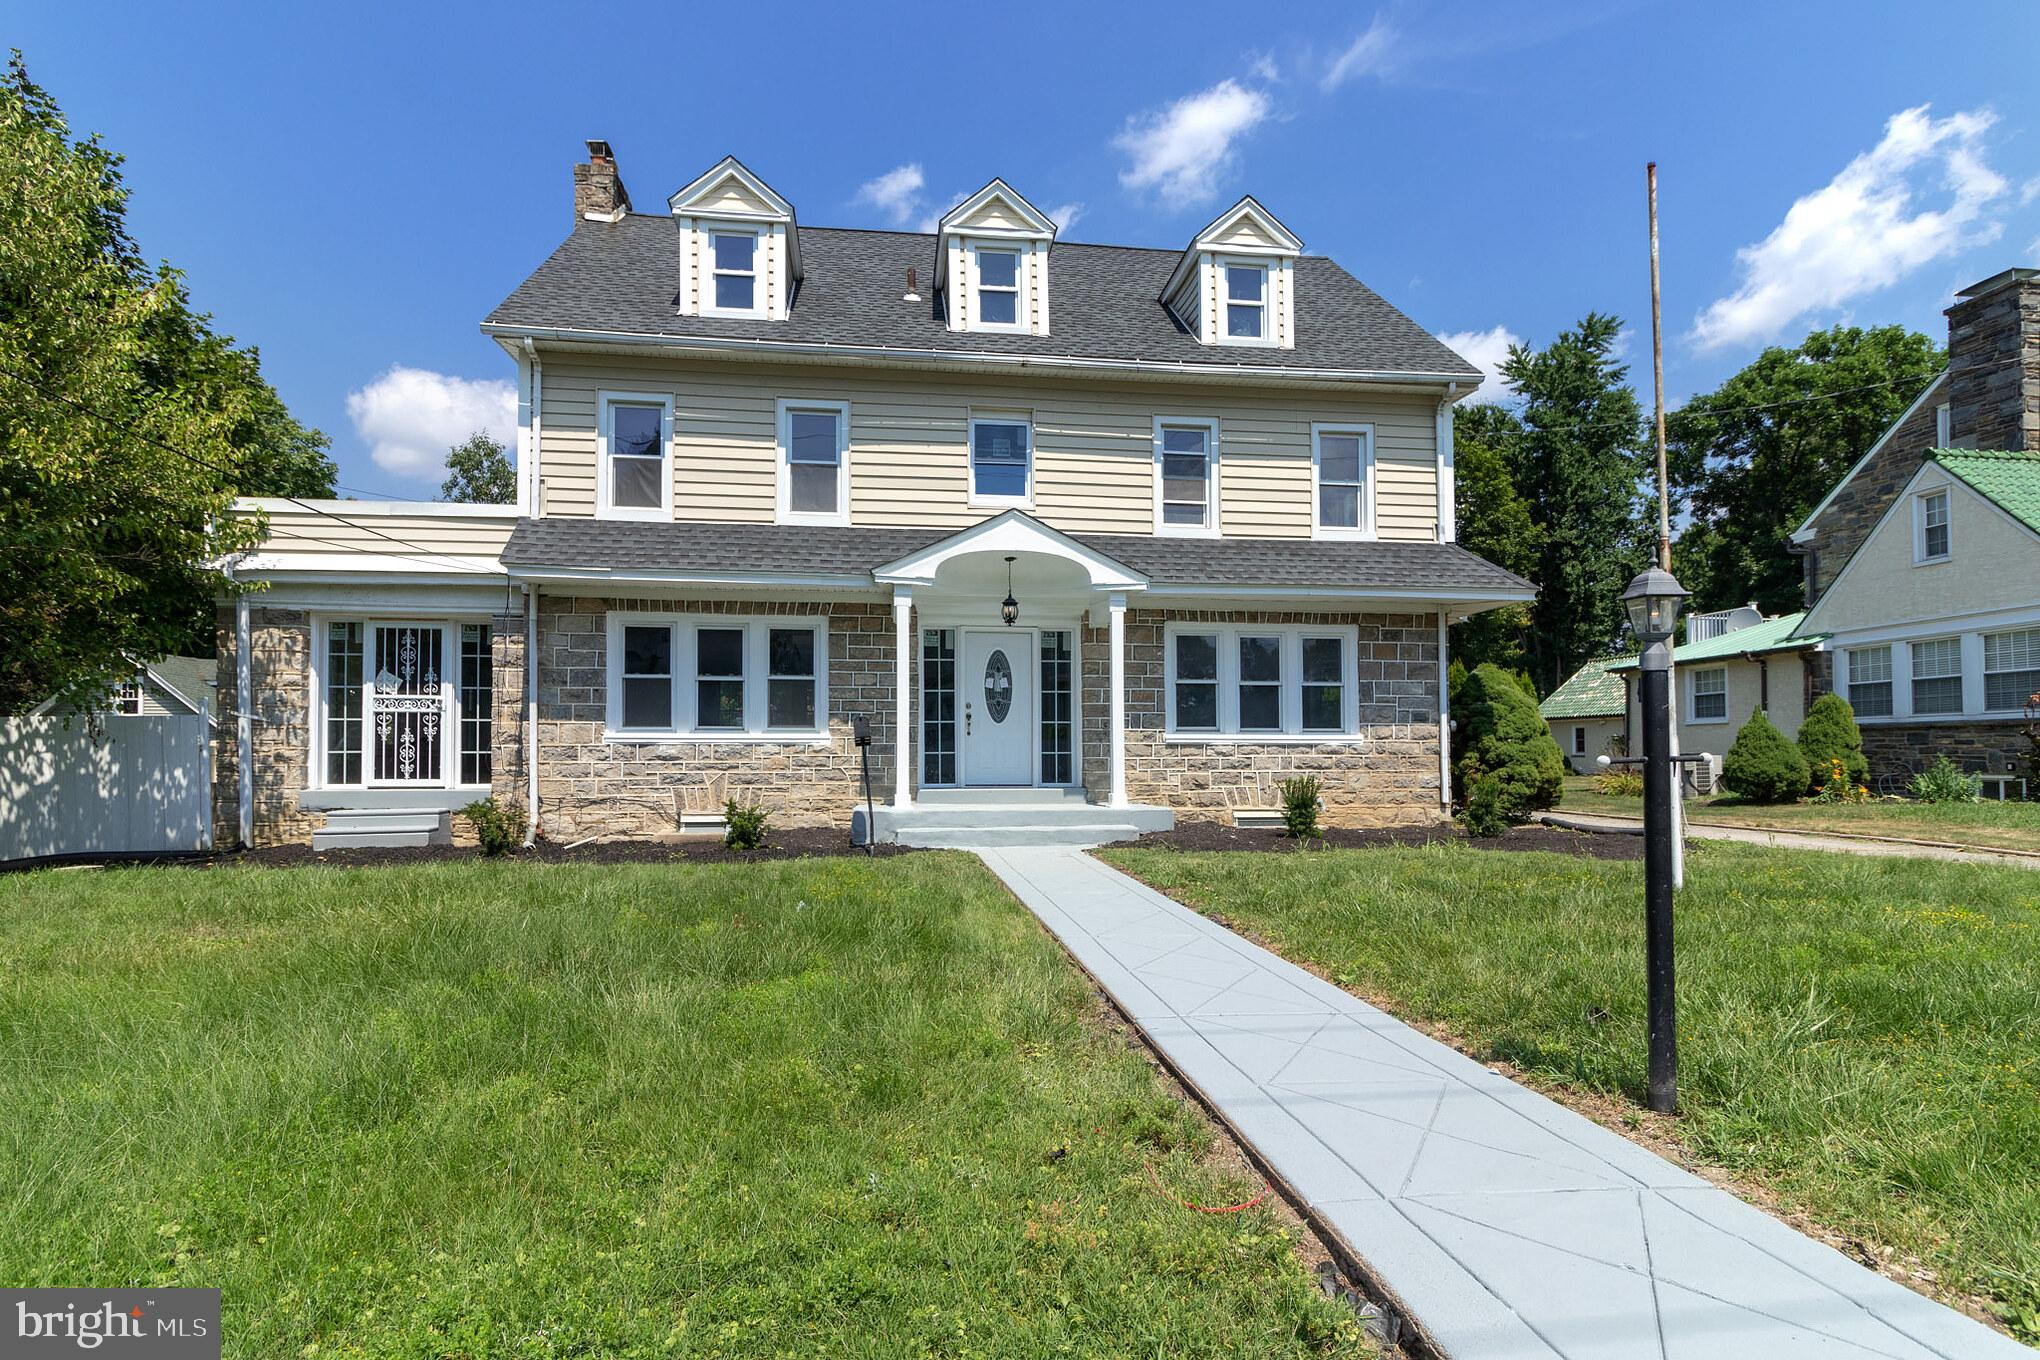 3111 SCHOOL LANE, DREXEL HILL, PA 19026